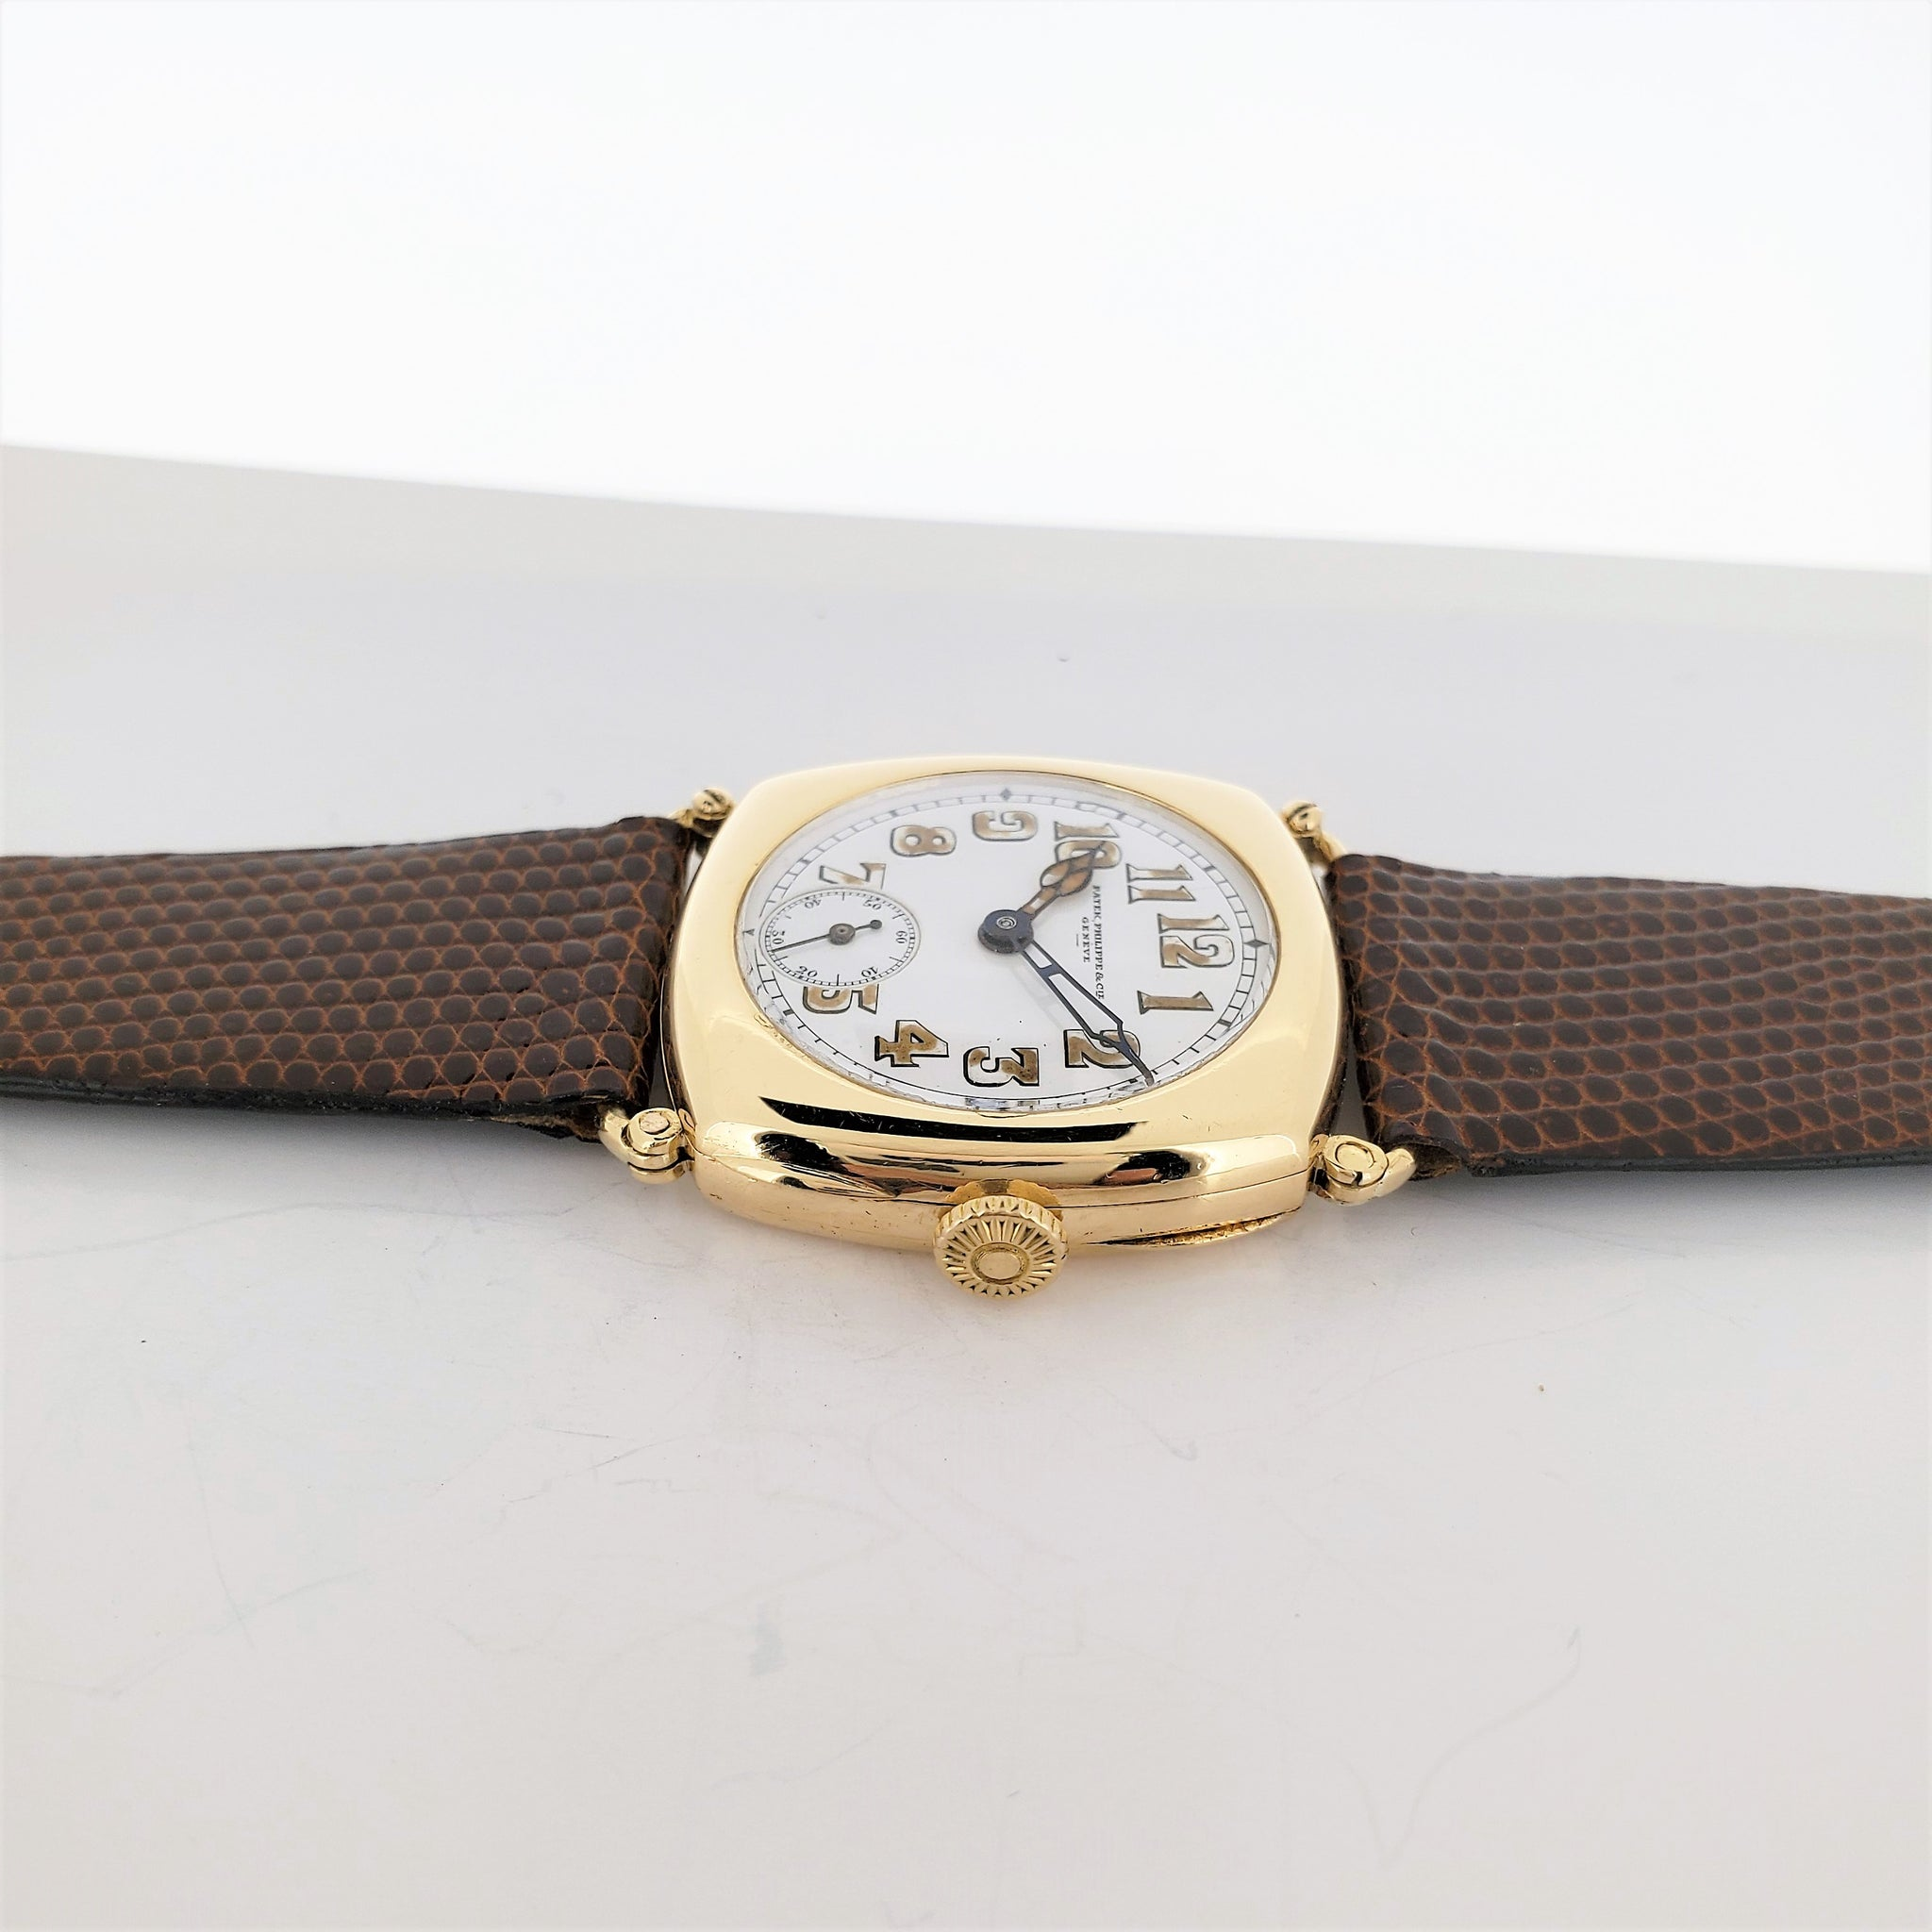 Patek Philippe Early No. 8 Cushion Vintage Watch Circa 1923